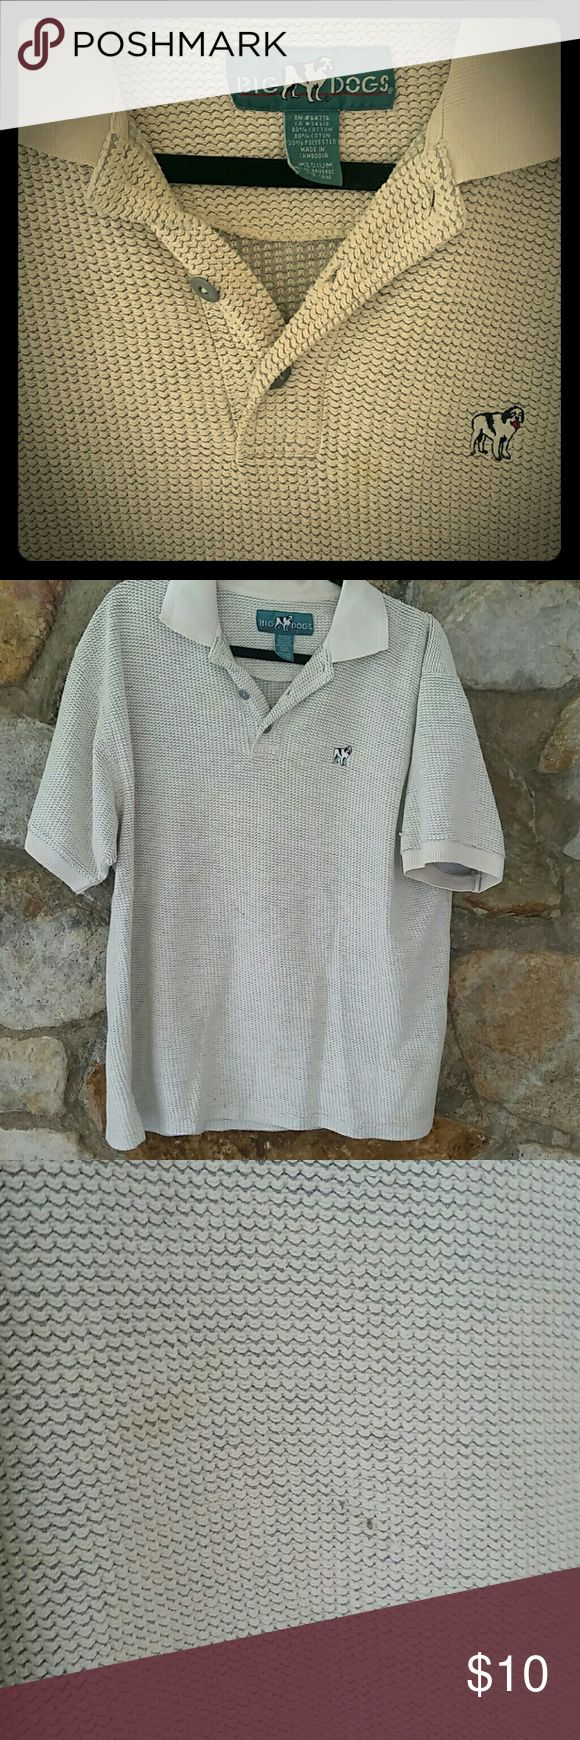 Tan shirt Soft and roomy. Very slight discoloration as pictured. big dog Shirts Polos